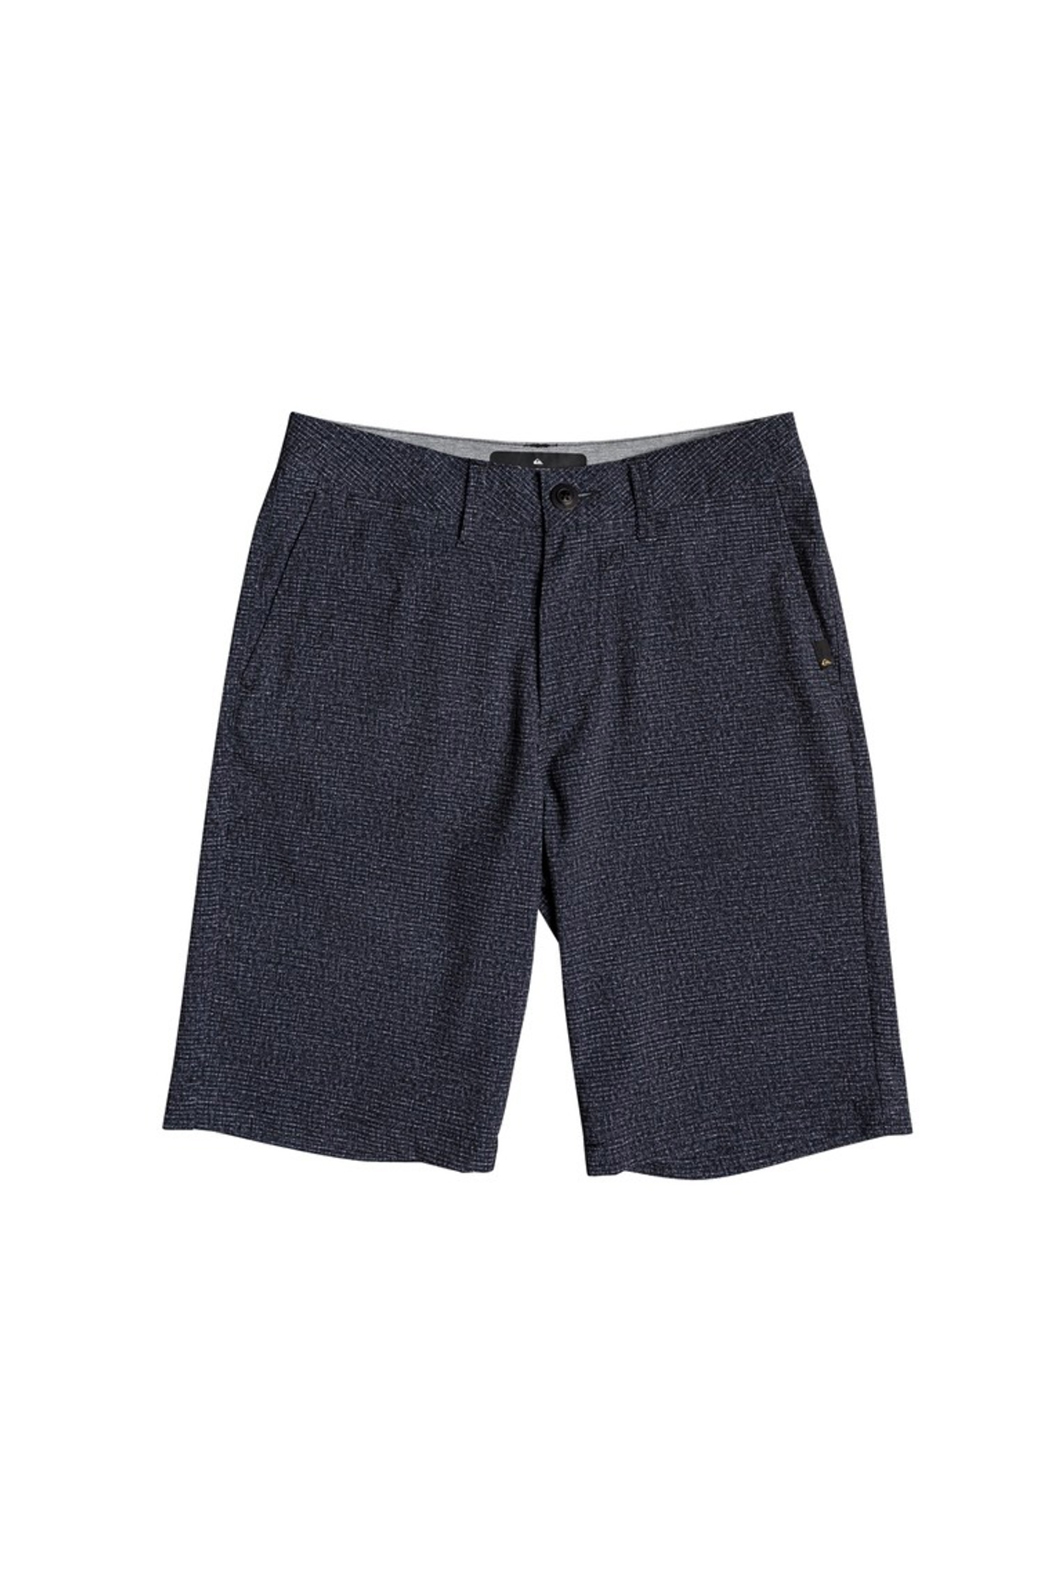 Quiksilver Union Heather Amphibian Shorts - Front Cropped Image